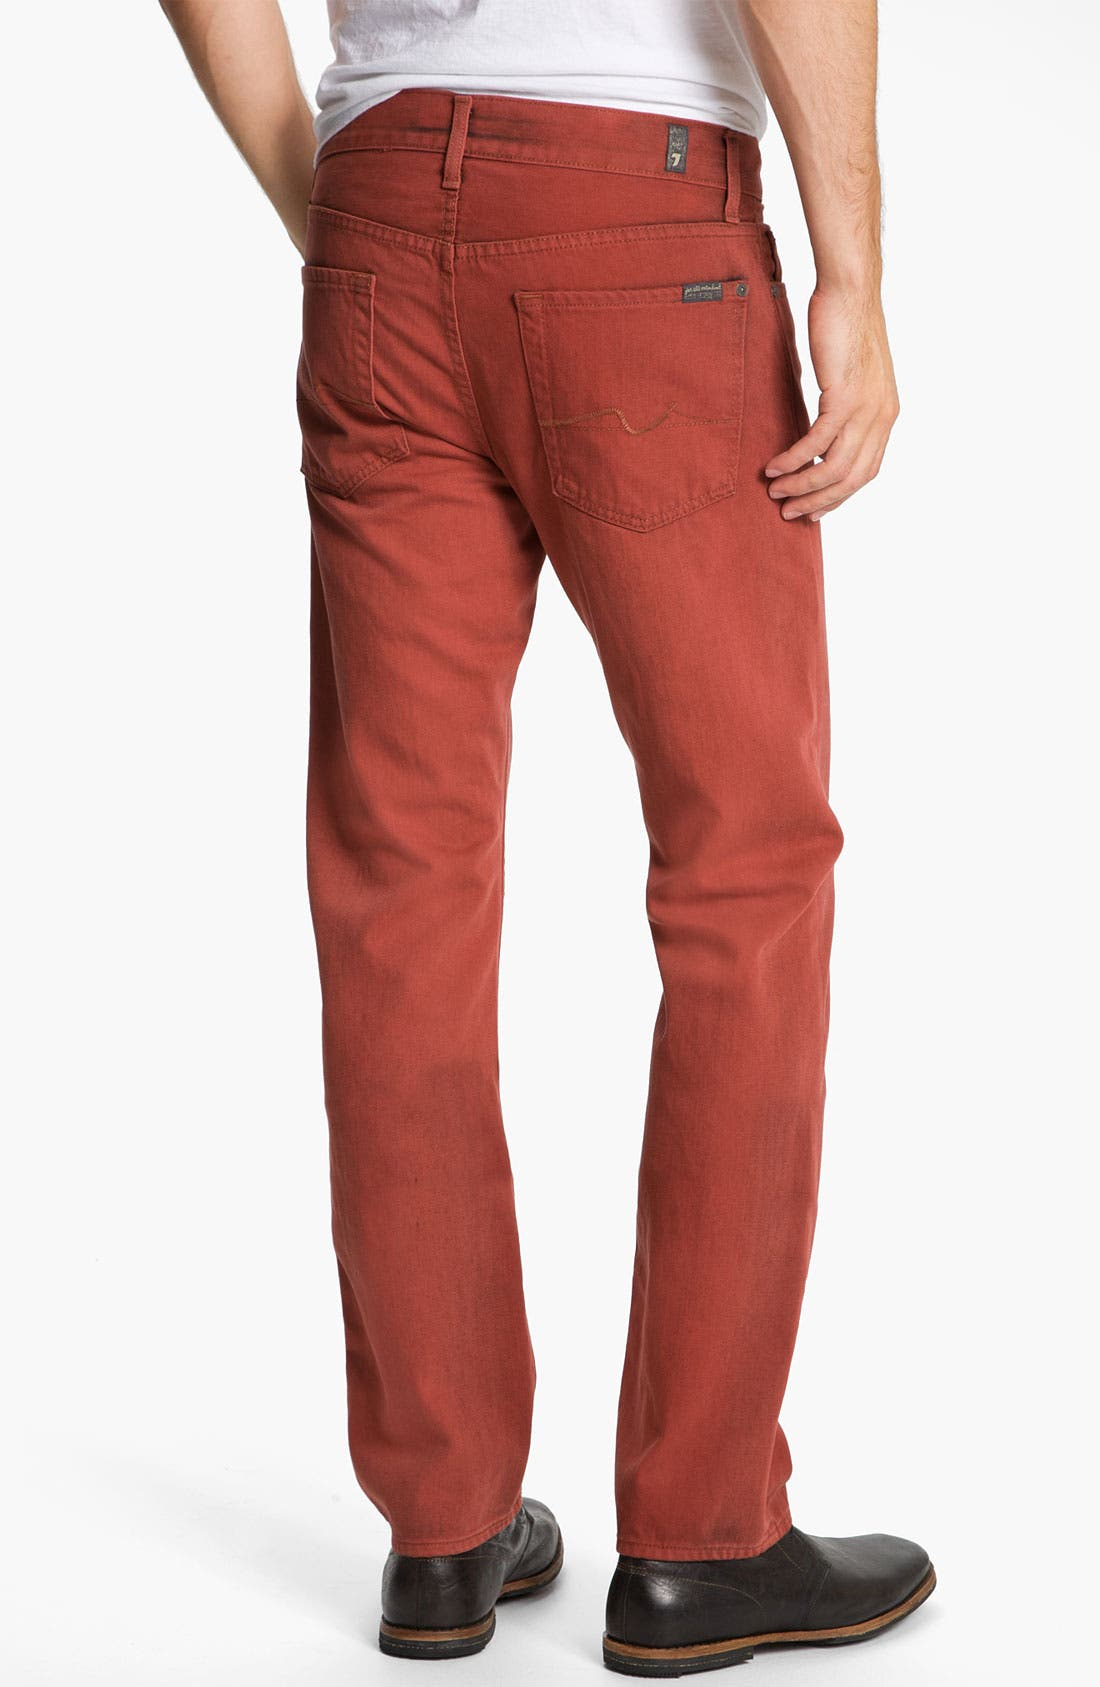 Alternate Image 1 Selected - 7 For All Mankind® 'Slimmy' Slim Straight Leg Jeans (Spicy Red)